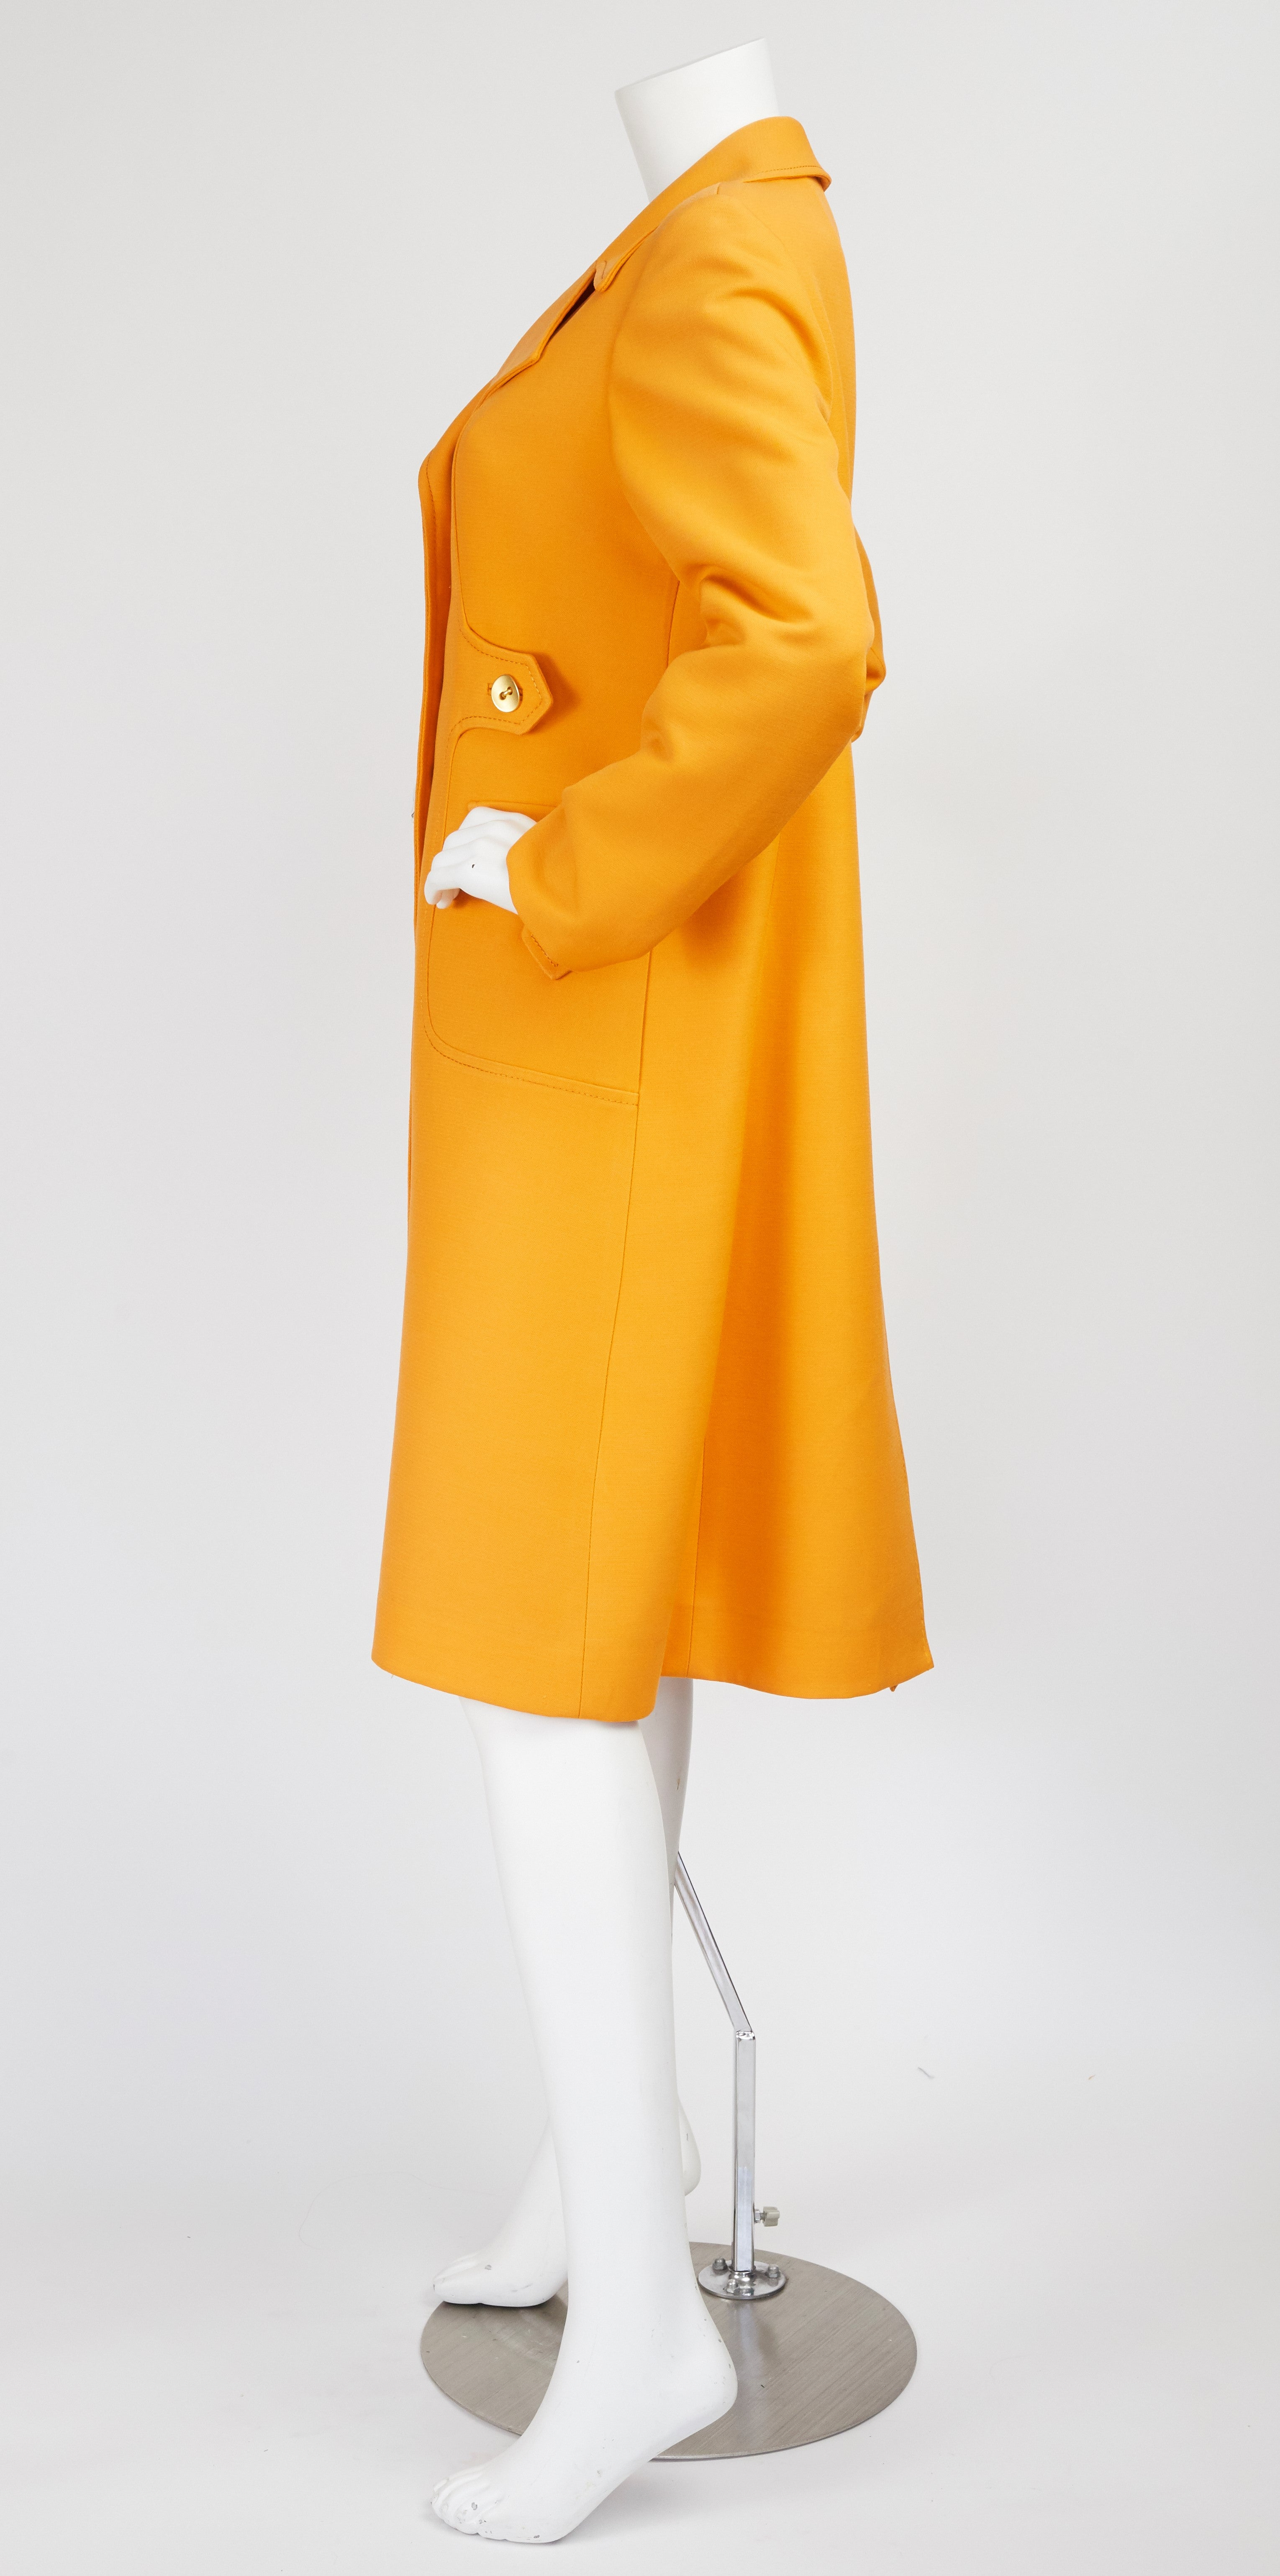 c.1970 Marc Bohan Demi-Couture Numbered Orange Wool Coat